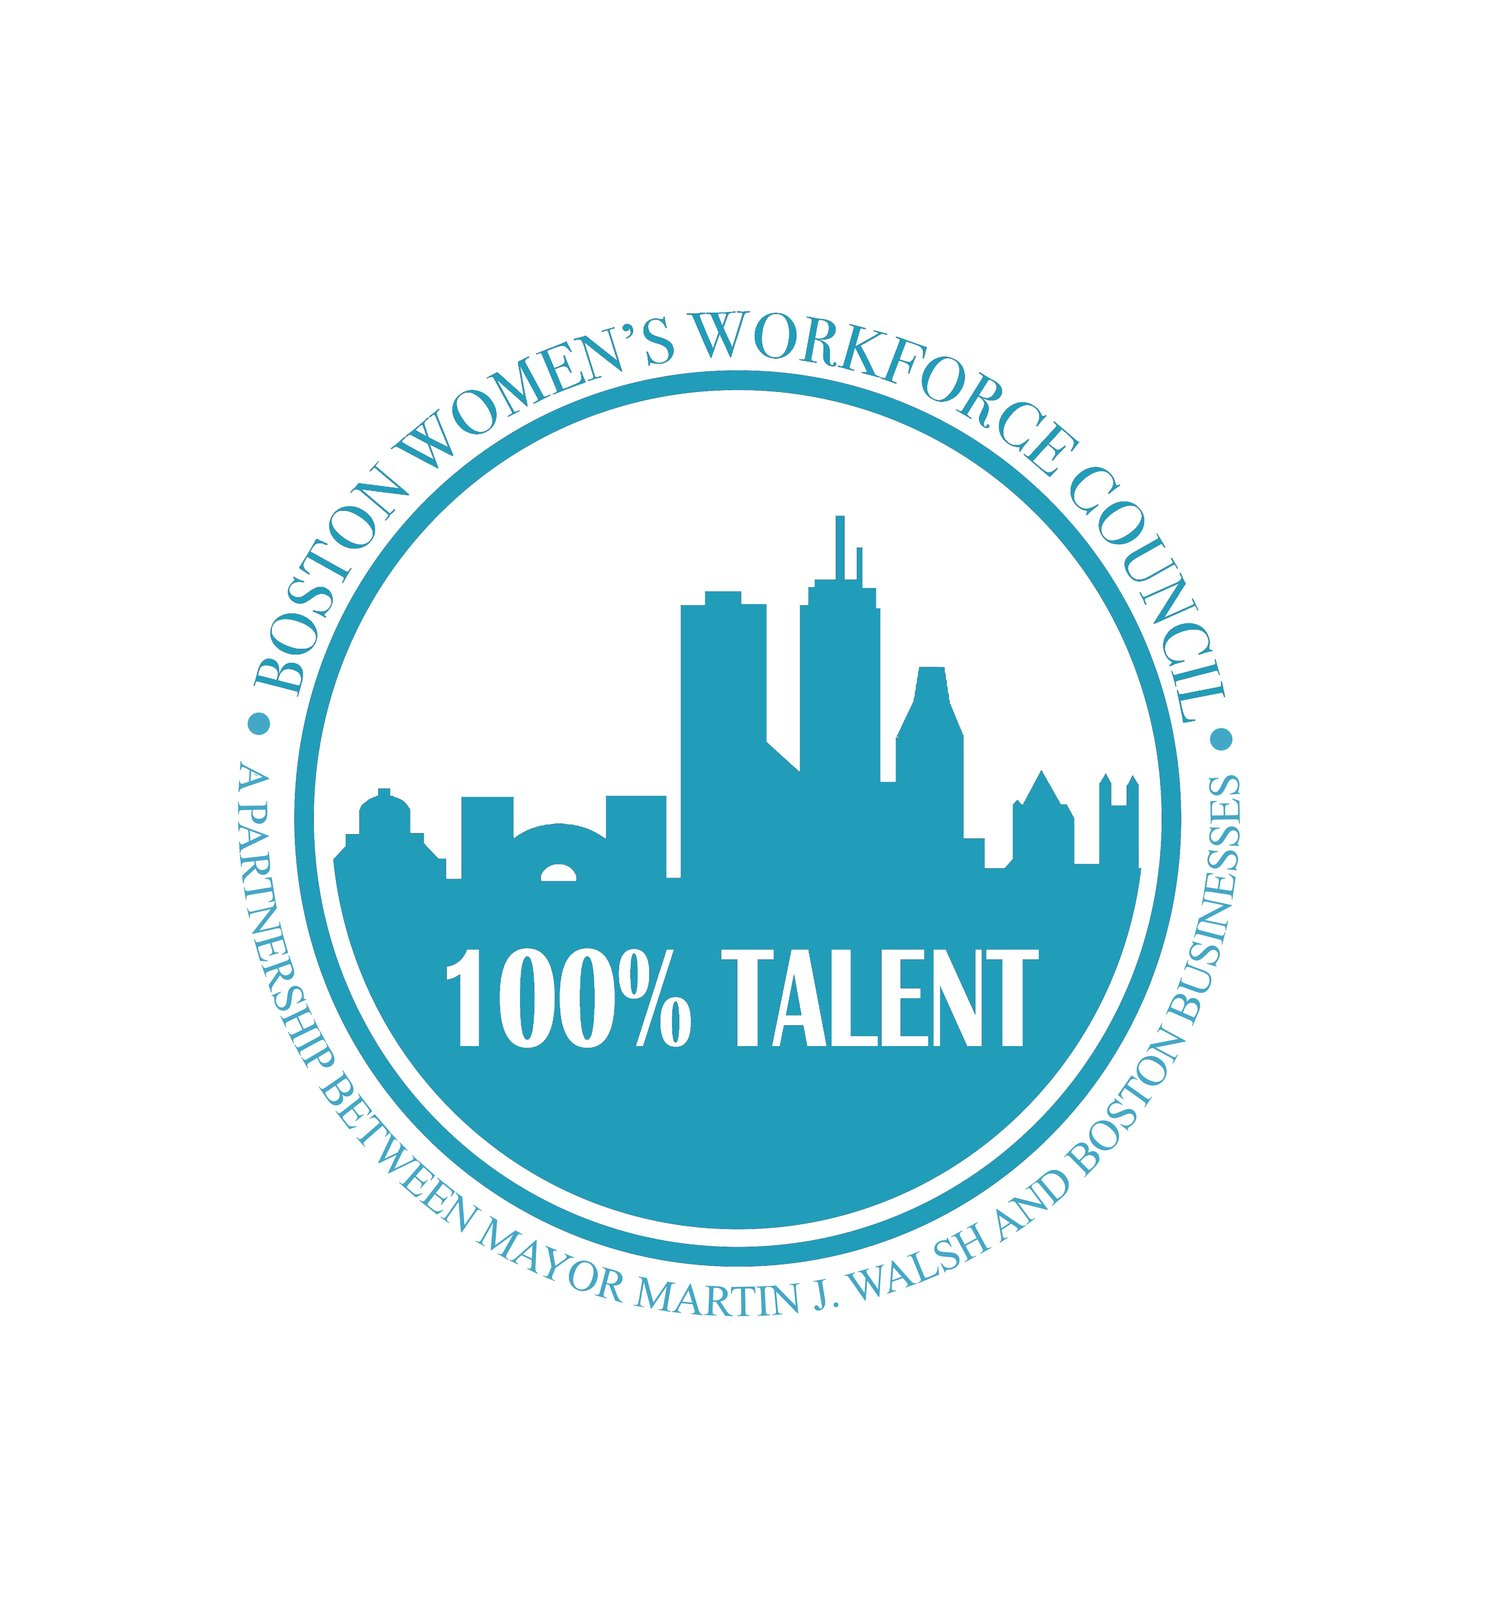 The Boston Women's Workforce Council